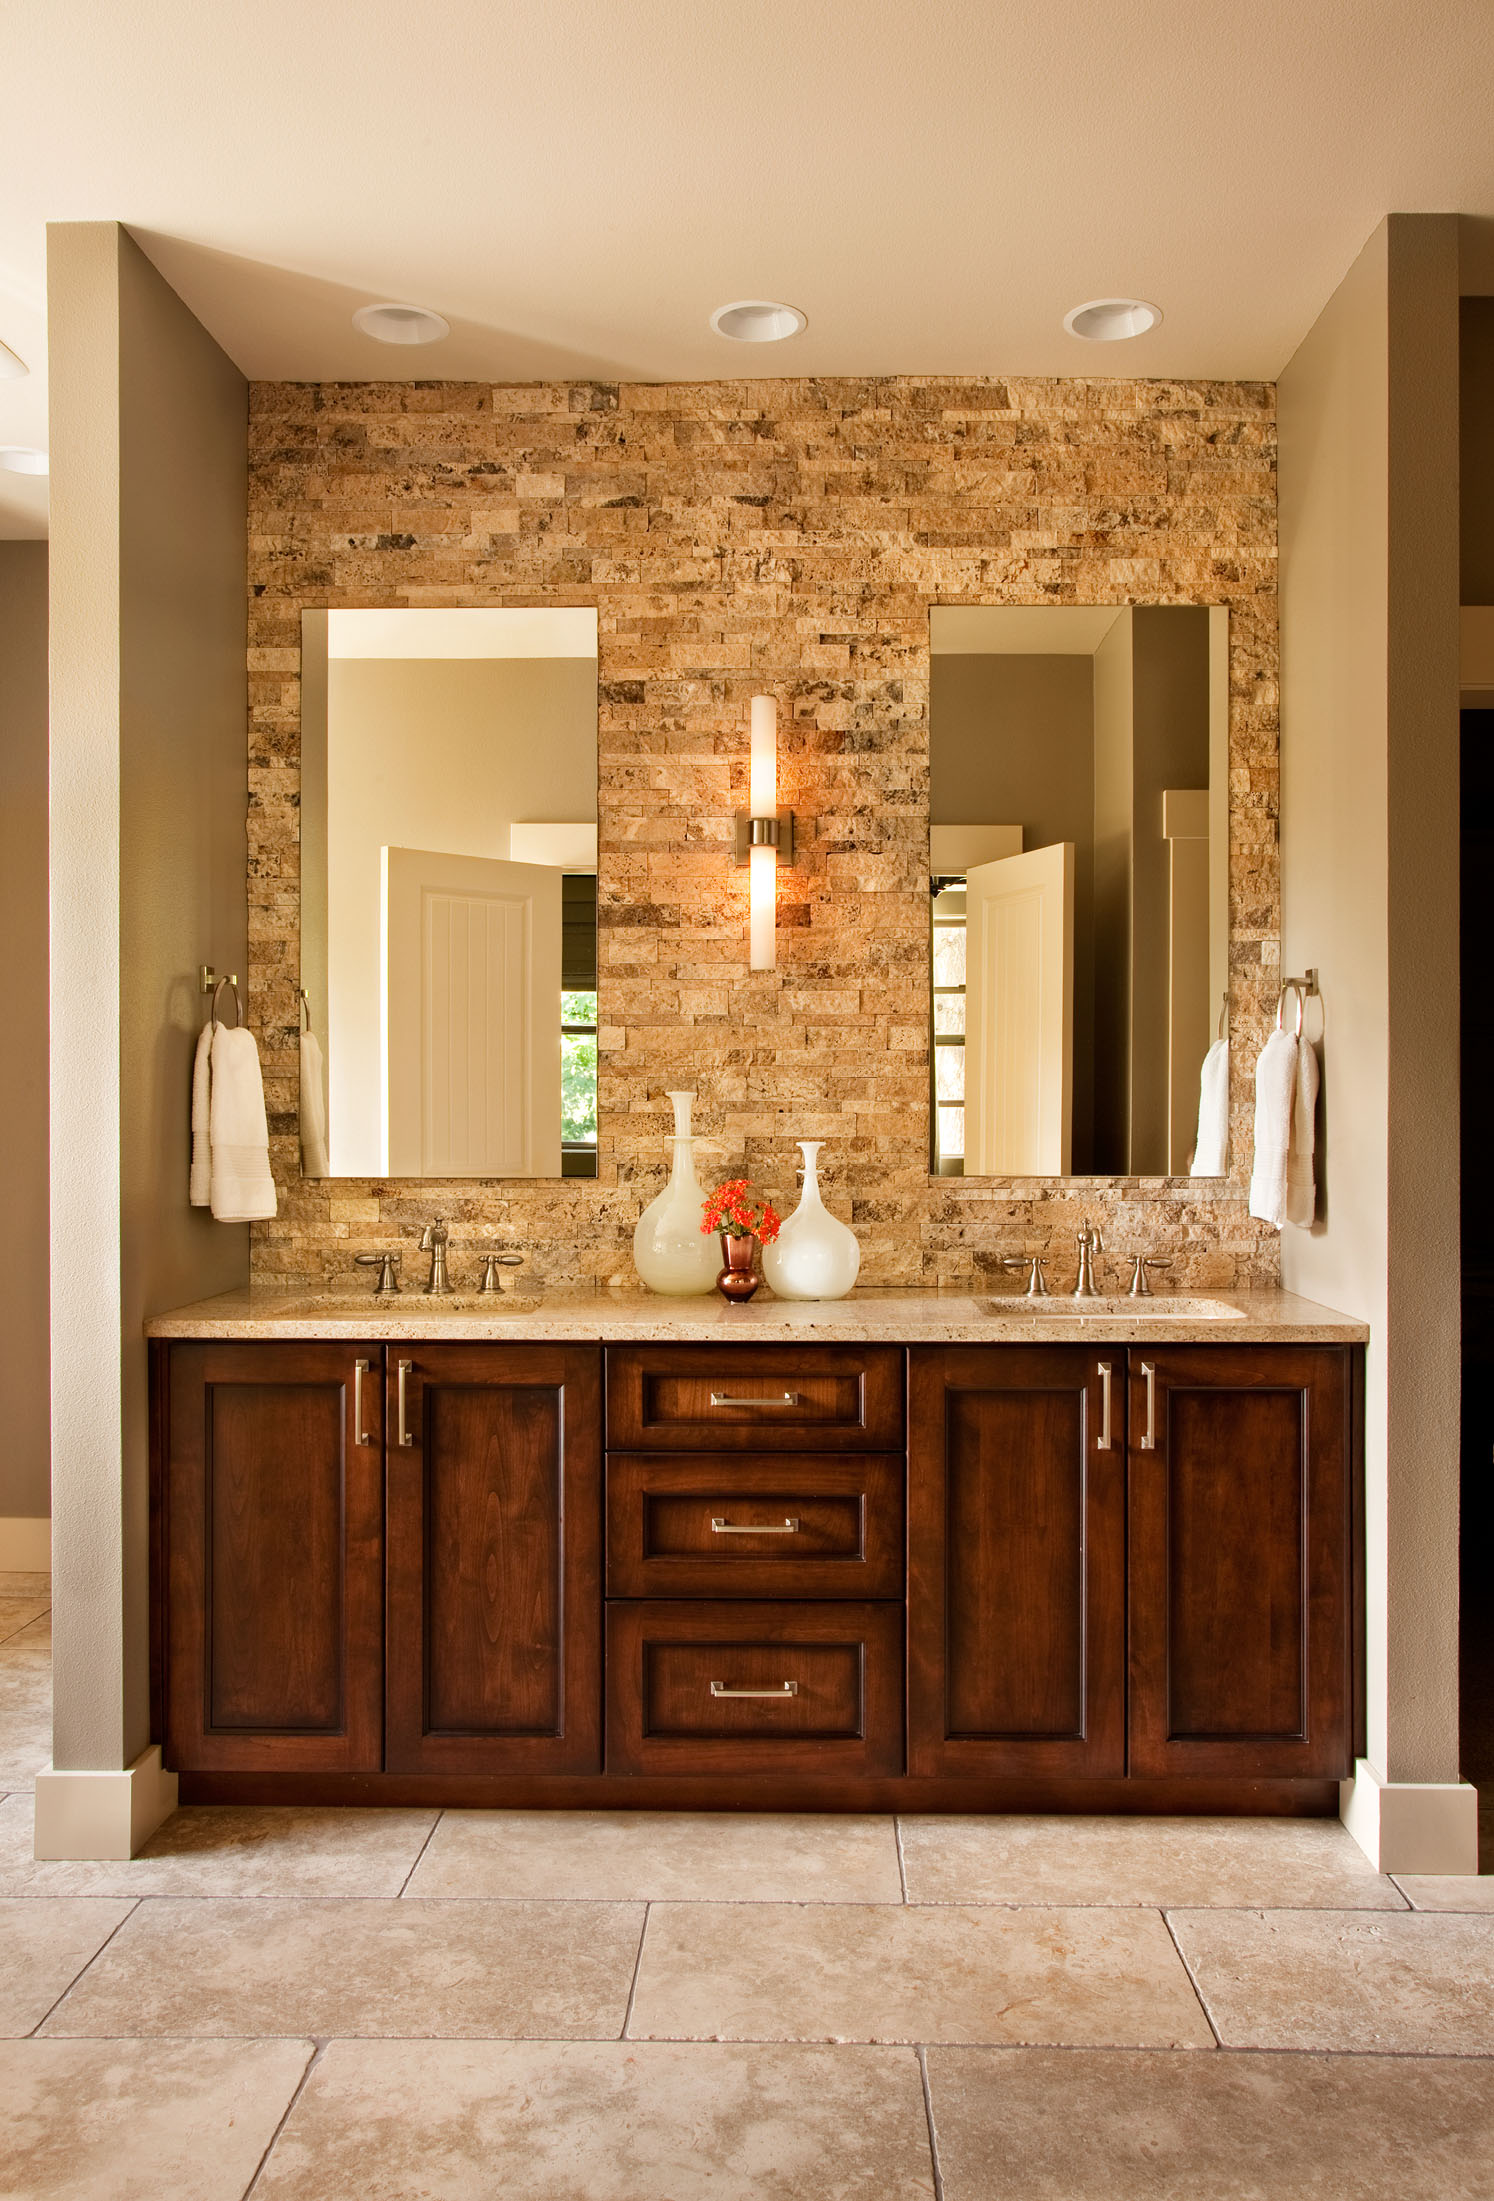 neutral bathroom ideas, natural stone used in bathrooms, double vanity bathroom ideas